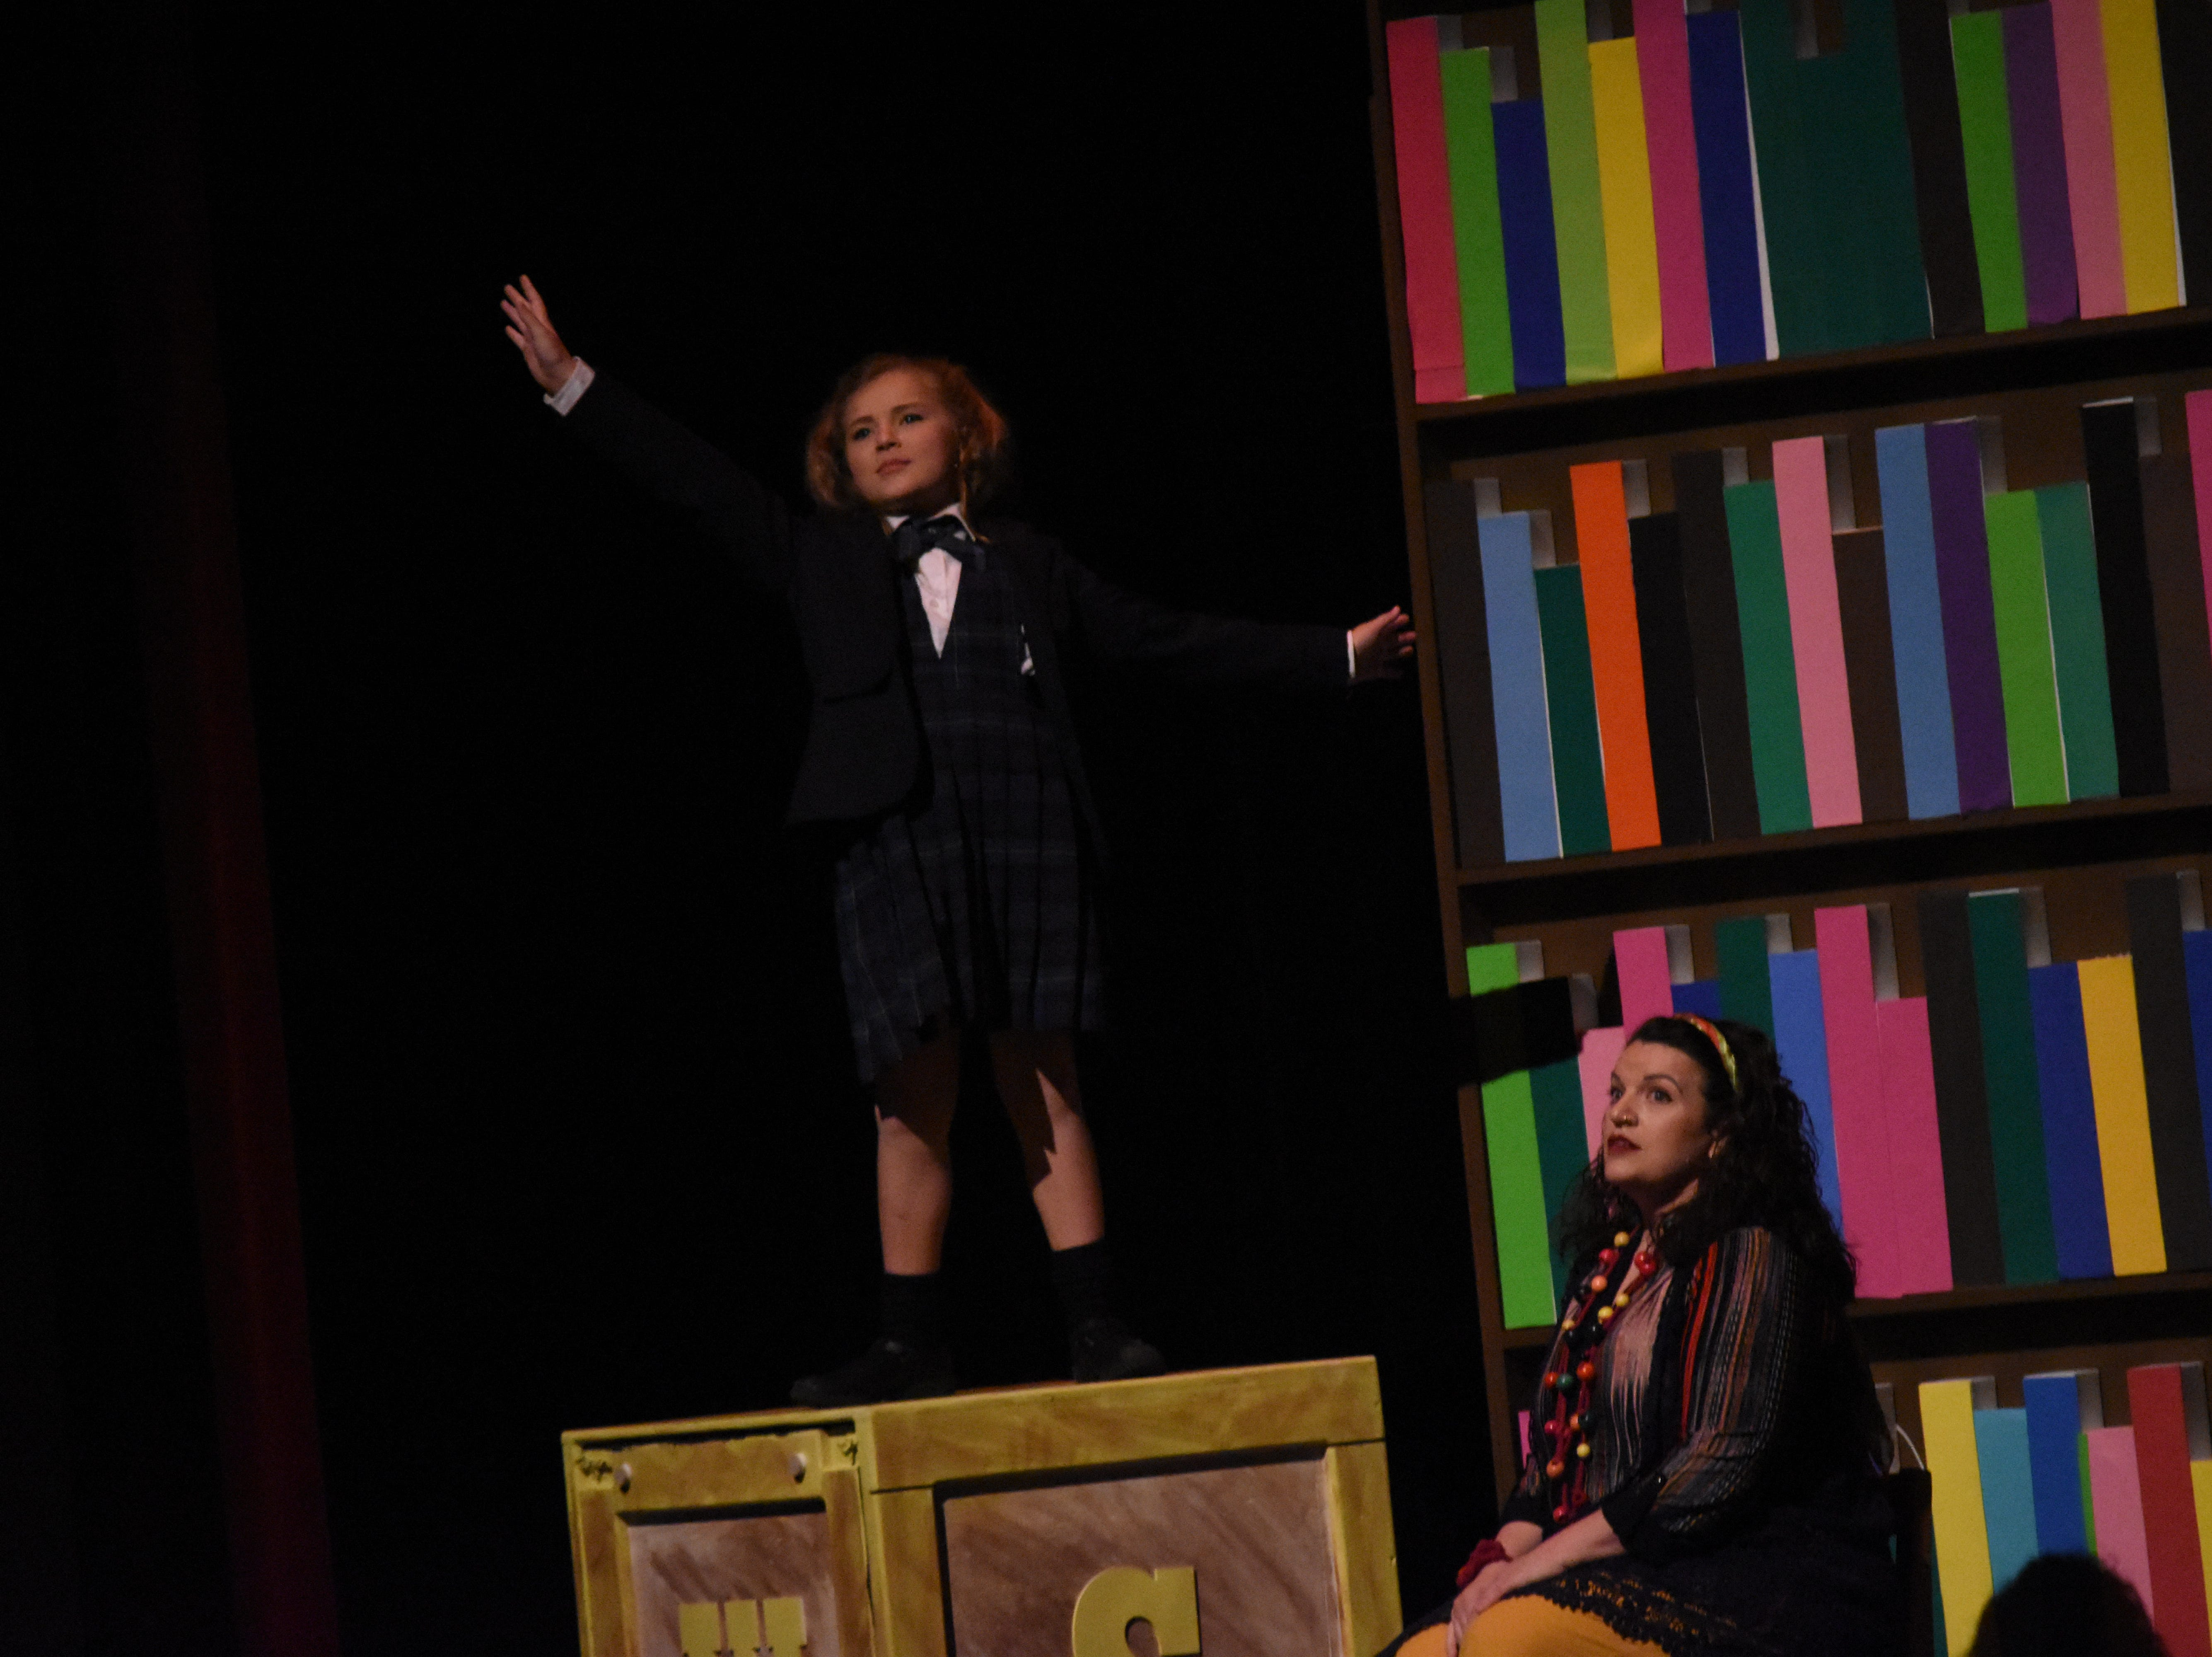 """Lagniappe Theatre Company is presenting """"Matilda the Musical"""" based on the book by Roald Dahl at 7 p.m. Thursday, Friday and Saturday and at 2:30 p.m. Sunday at the Coughlin Saunders Performing Arts Center in downtown Alexandria. Starring in the title role are Evie LaFleur and Chloe Lair. """"Matilda the Musical"""" is the story of an intelligent young girl who is born into an unloving family. She is sent away to school where her kind schoolteacher is impressed with her. The school's headmistress, however, doesn't like children and doles out cruel punishments for those who break her rules."""